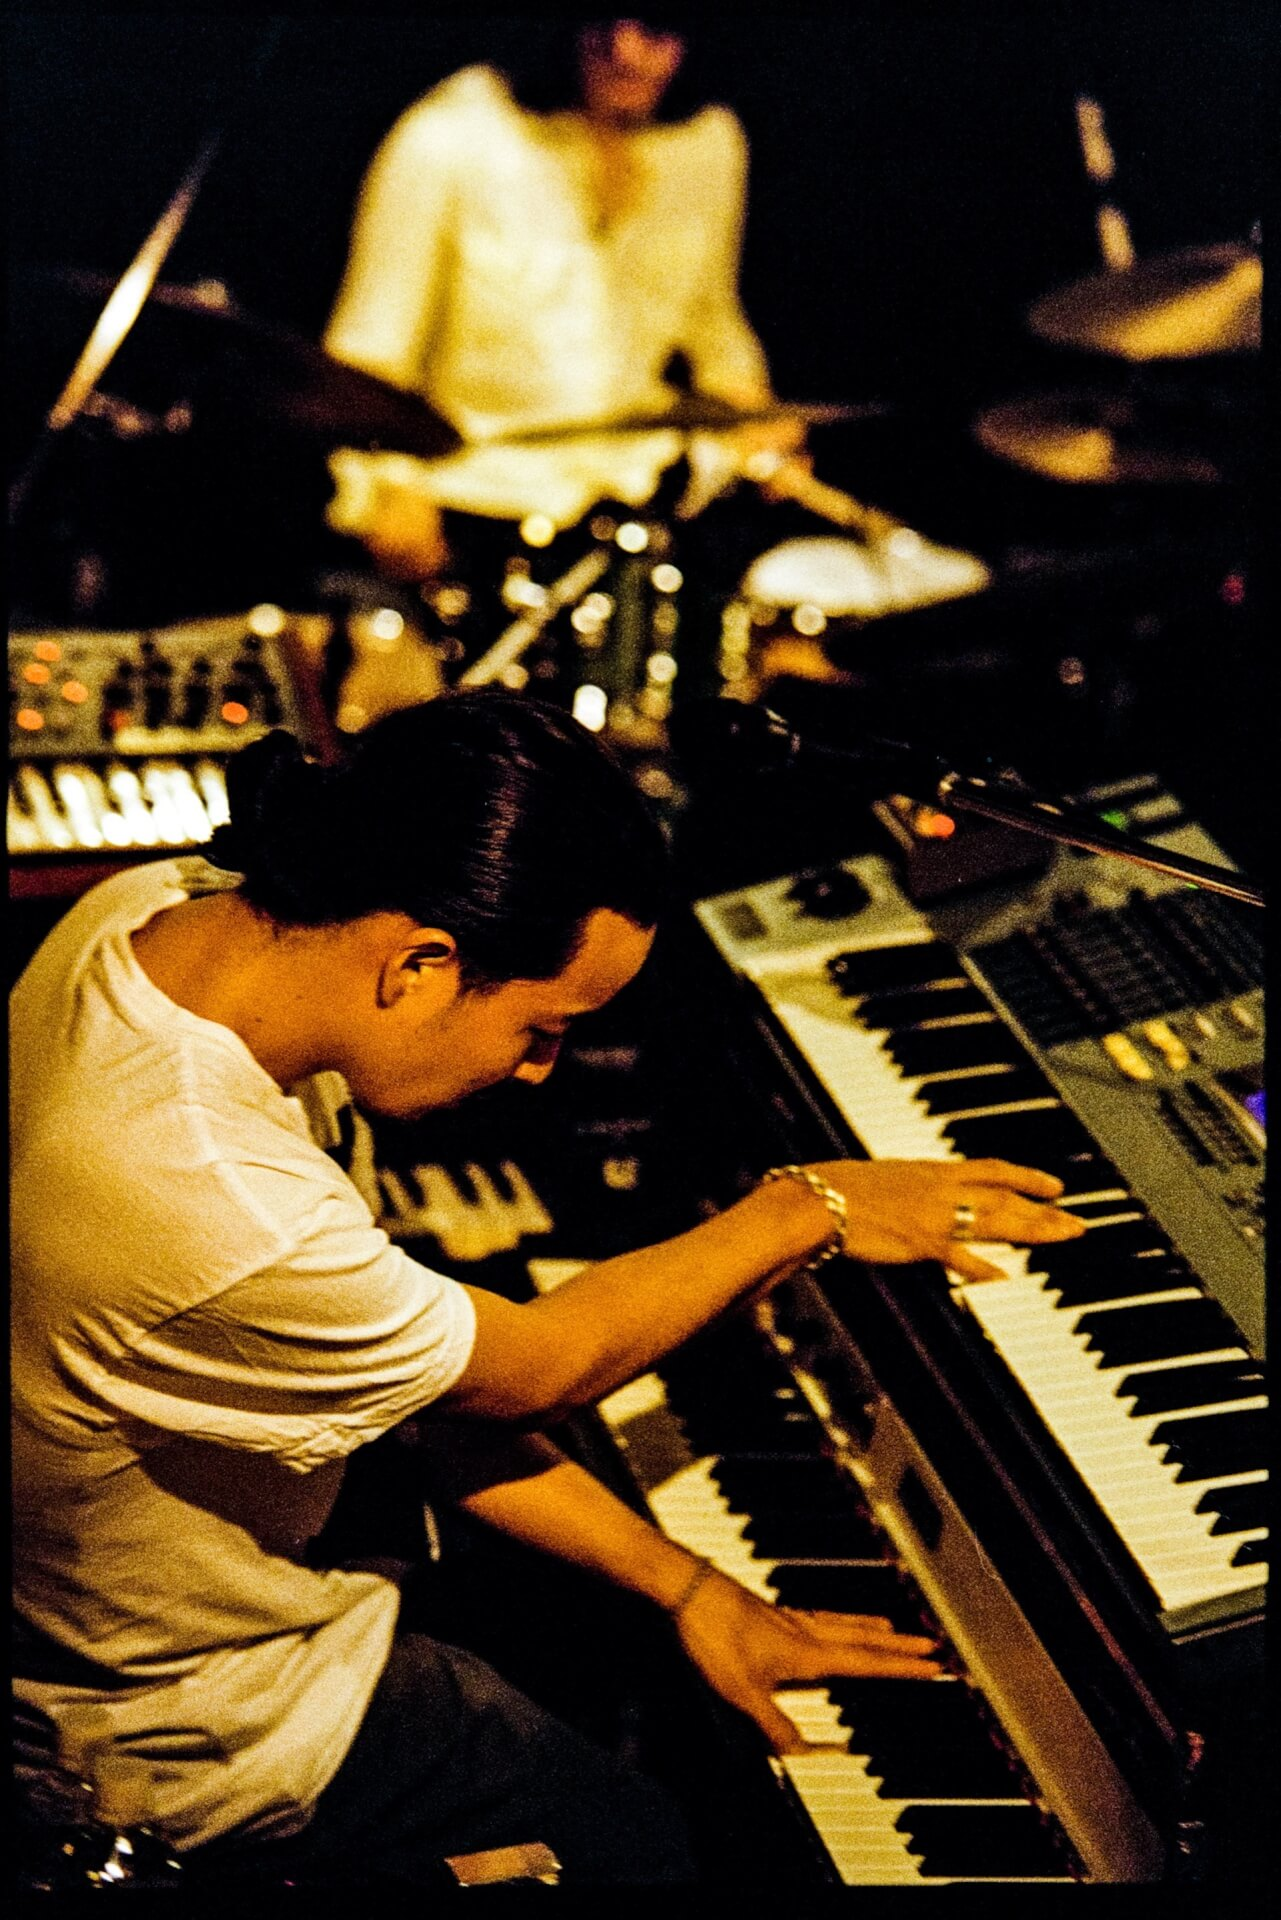 〜 LIVEWIRE Suchmos From The Window 〜【Photo Documentary】 music200721_suchmos_live_7